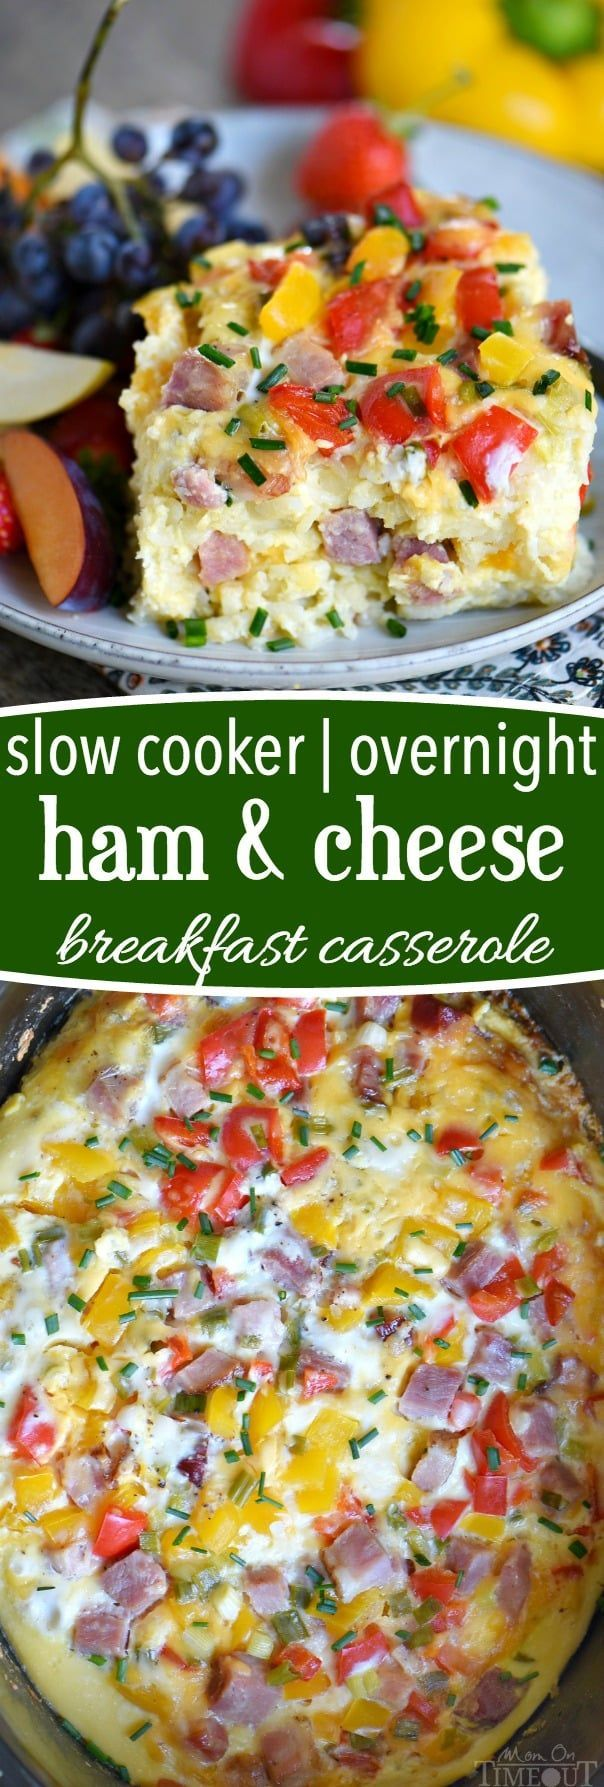 ThisSlow Cooker Overnight Ham and Cheese Breakfast Casseroleis a great way to start your day! Loaded with ham, cheese, potatoes, bell peppers, and more, this casserole is perfect for busy weekday mornings, holidays, or Sunday brunch! // Mom On Timeout